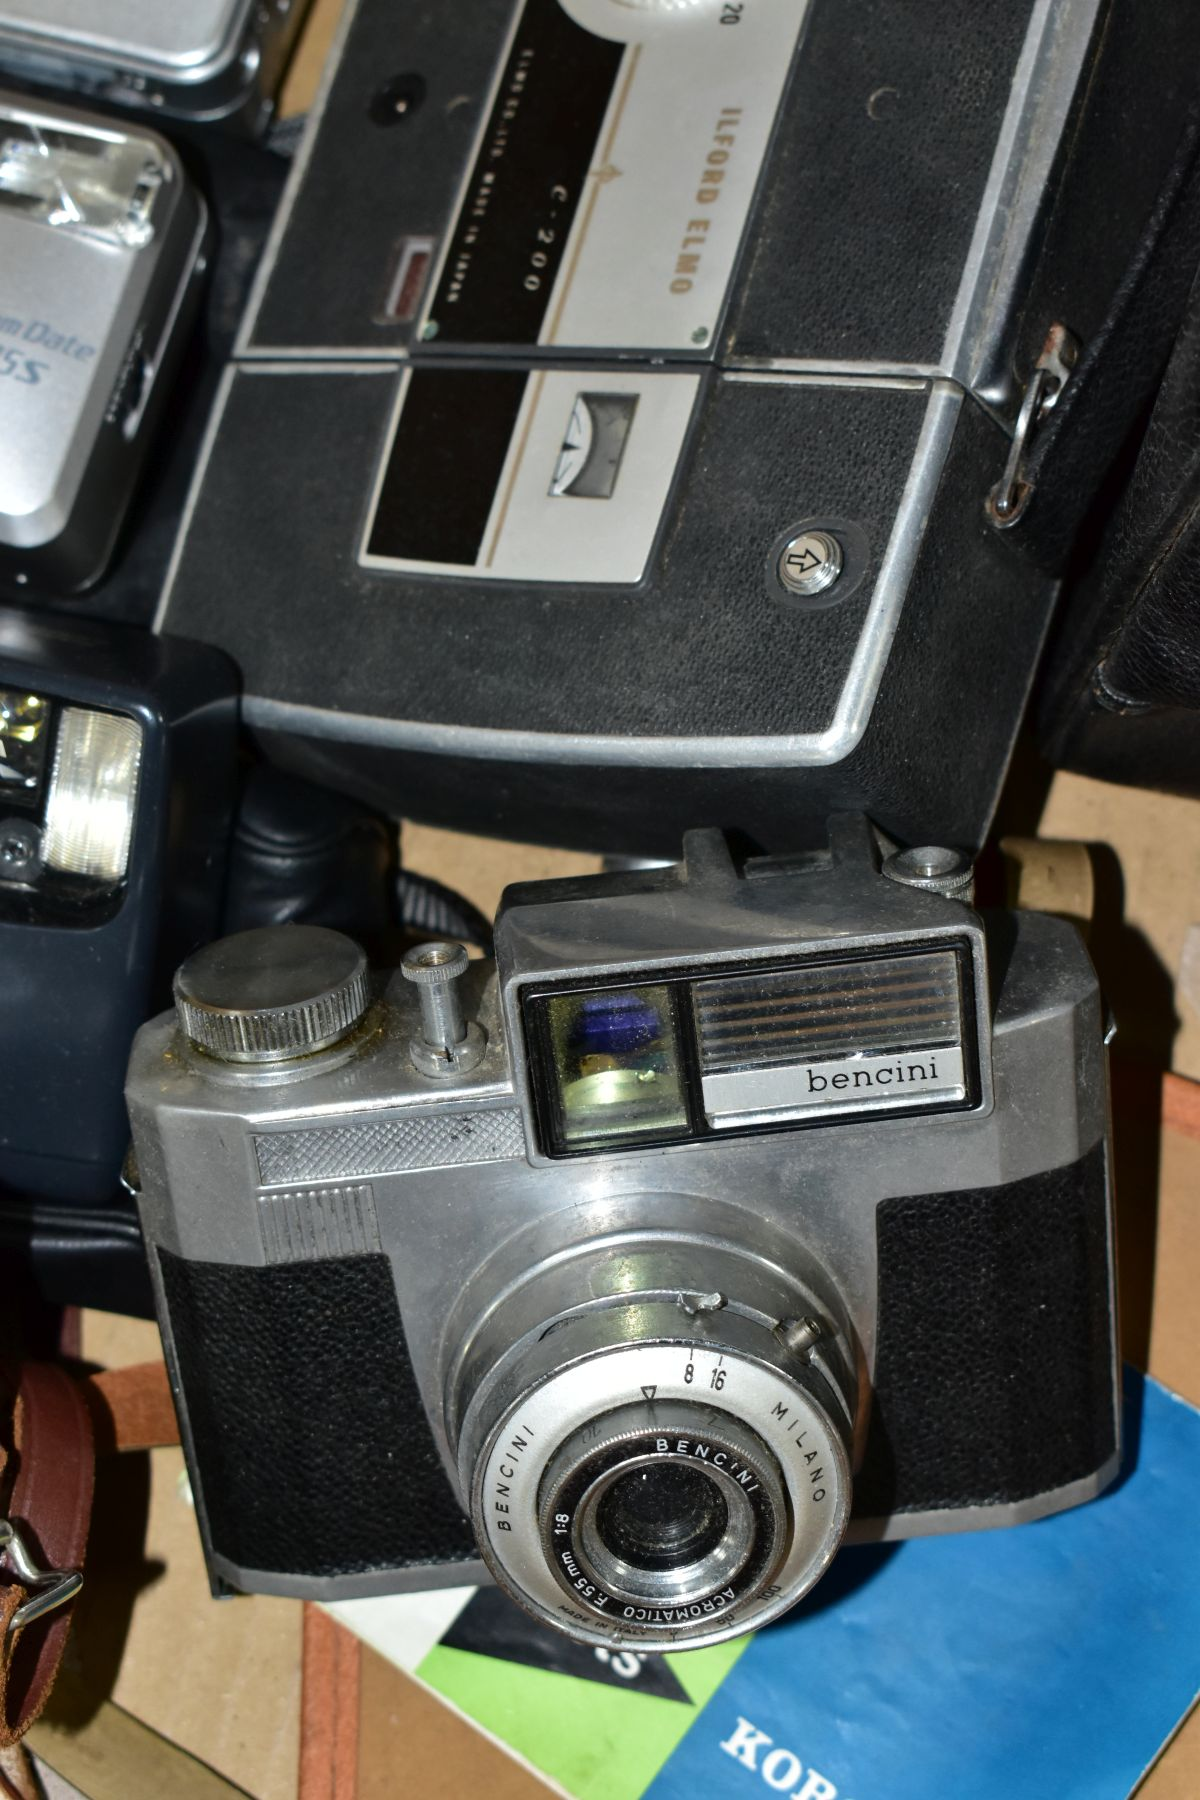 PHOTOGRAPHIC EQUIPMENT, to include Halina Rolls SLR Camera, a Boots Koroll II SLR Camera, - Image 3 of 8